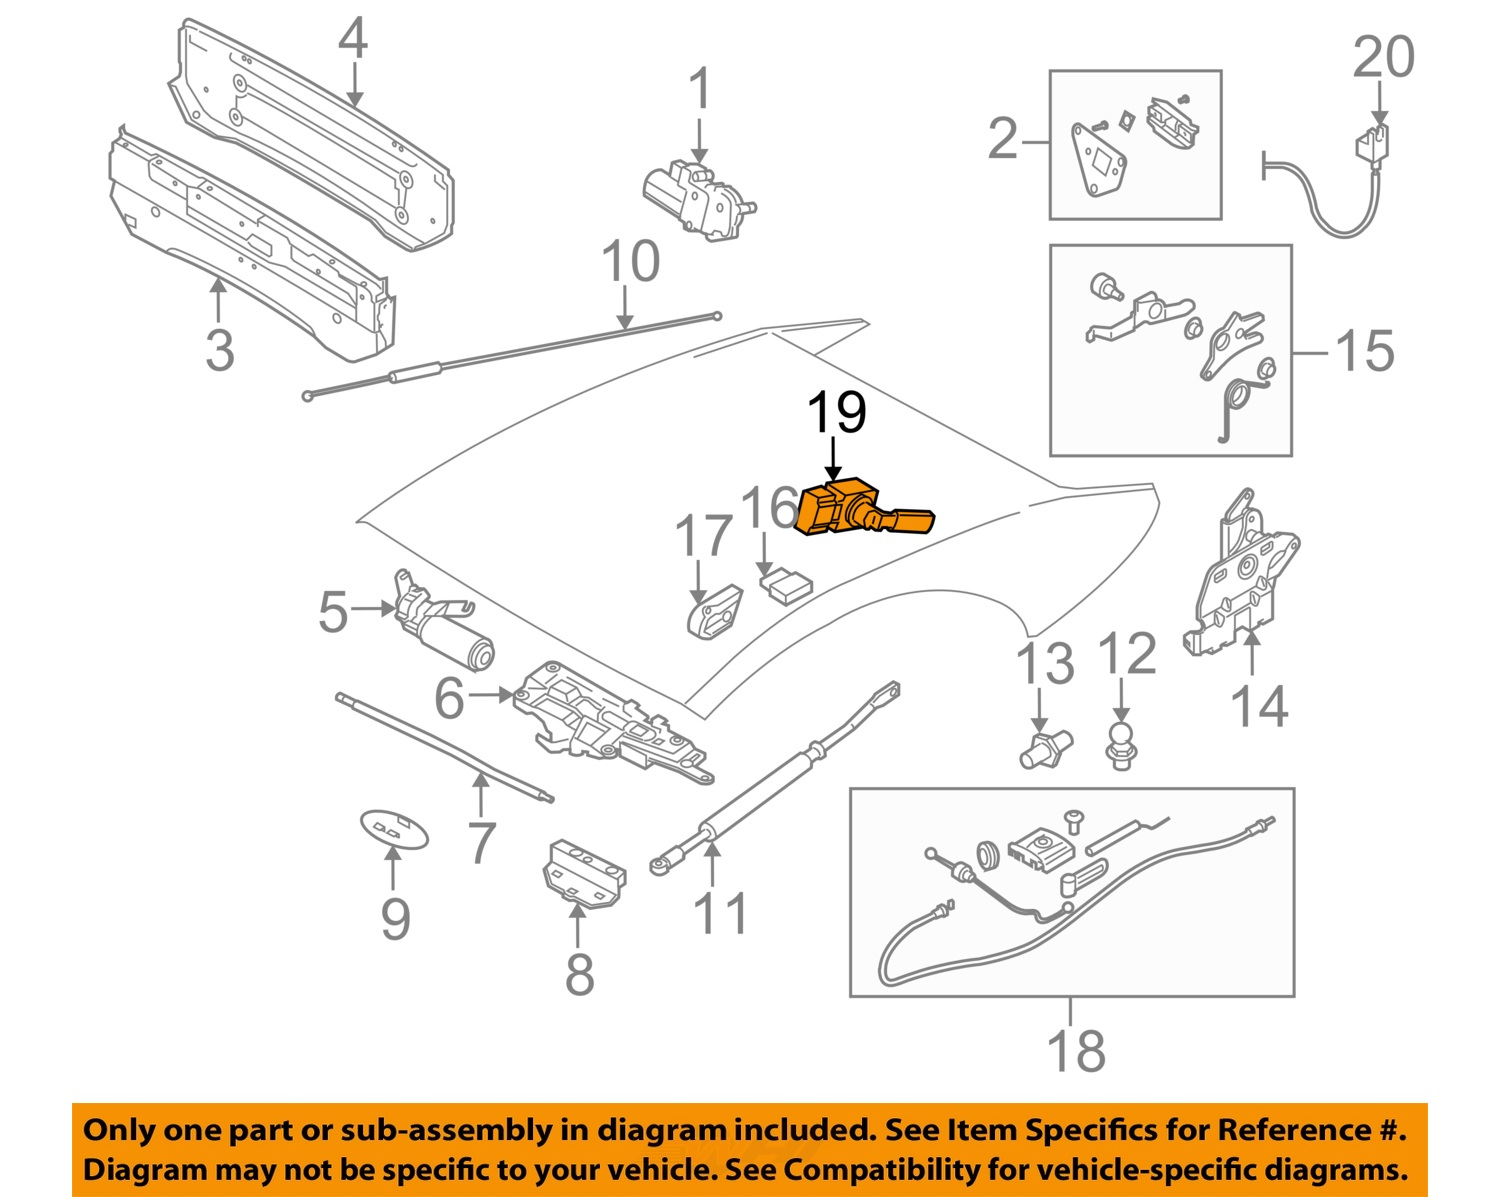 bmw oem 08 10 m6 convertible top sensor 54348268997 ebay rh ebay com bmw e36 convertible top wiring diagram bmw e36 convertible top wiring diagram